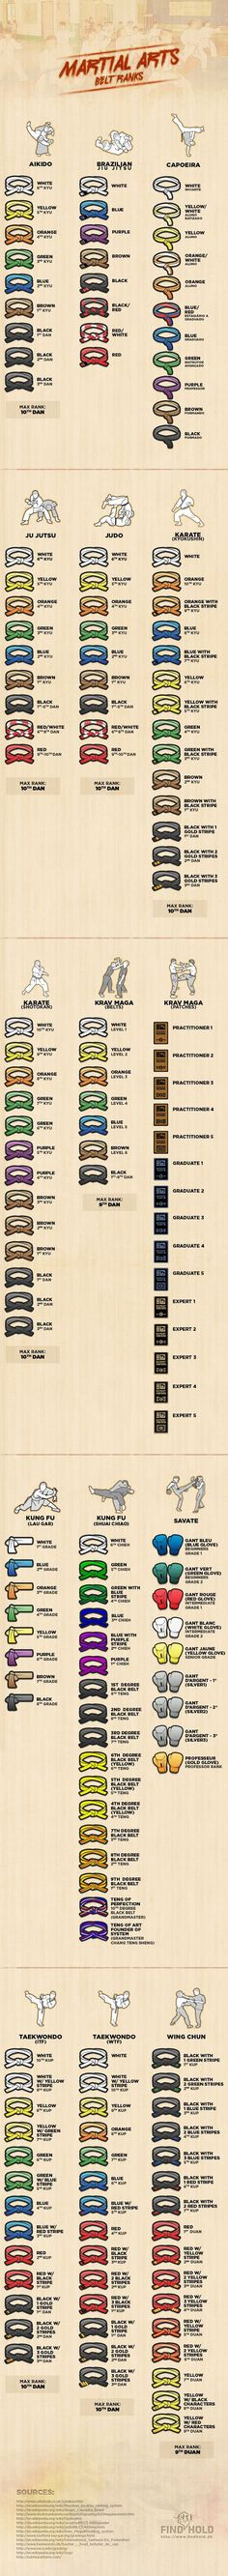 15 Martial Arts Belt Ranks Infographic | MMA Verse. Hm not sure about some of these.: